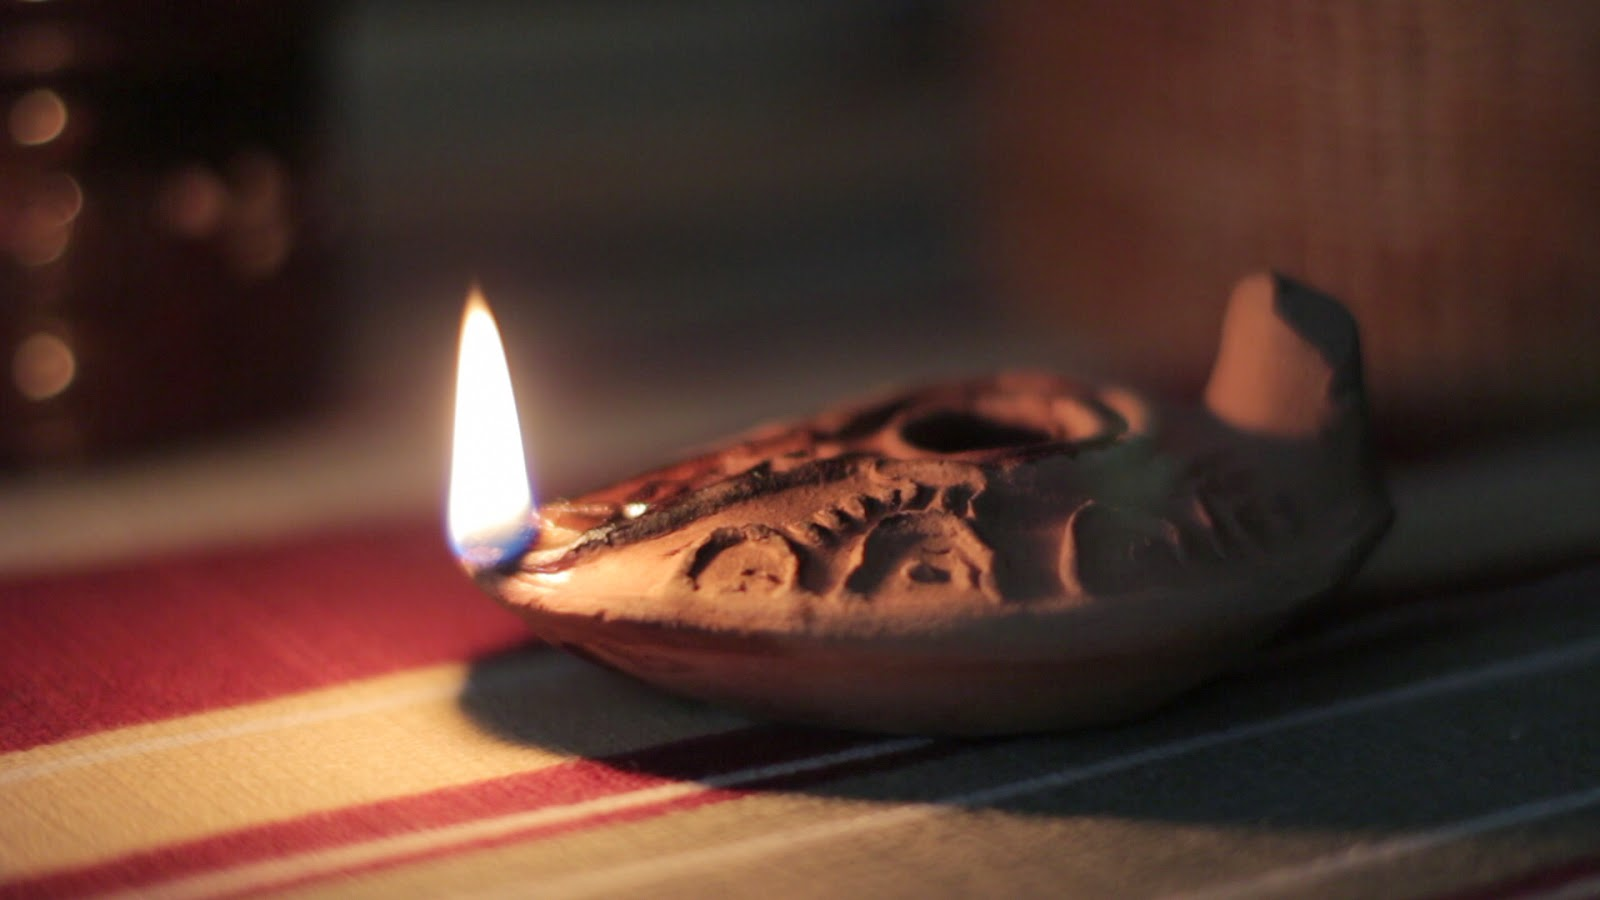 lamp and bible - photo #35